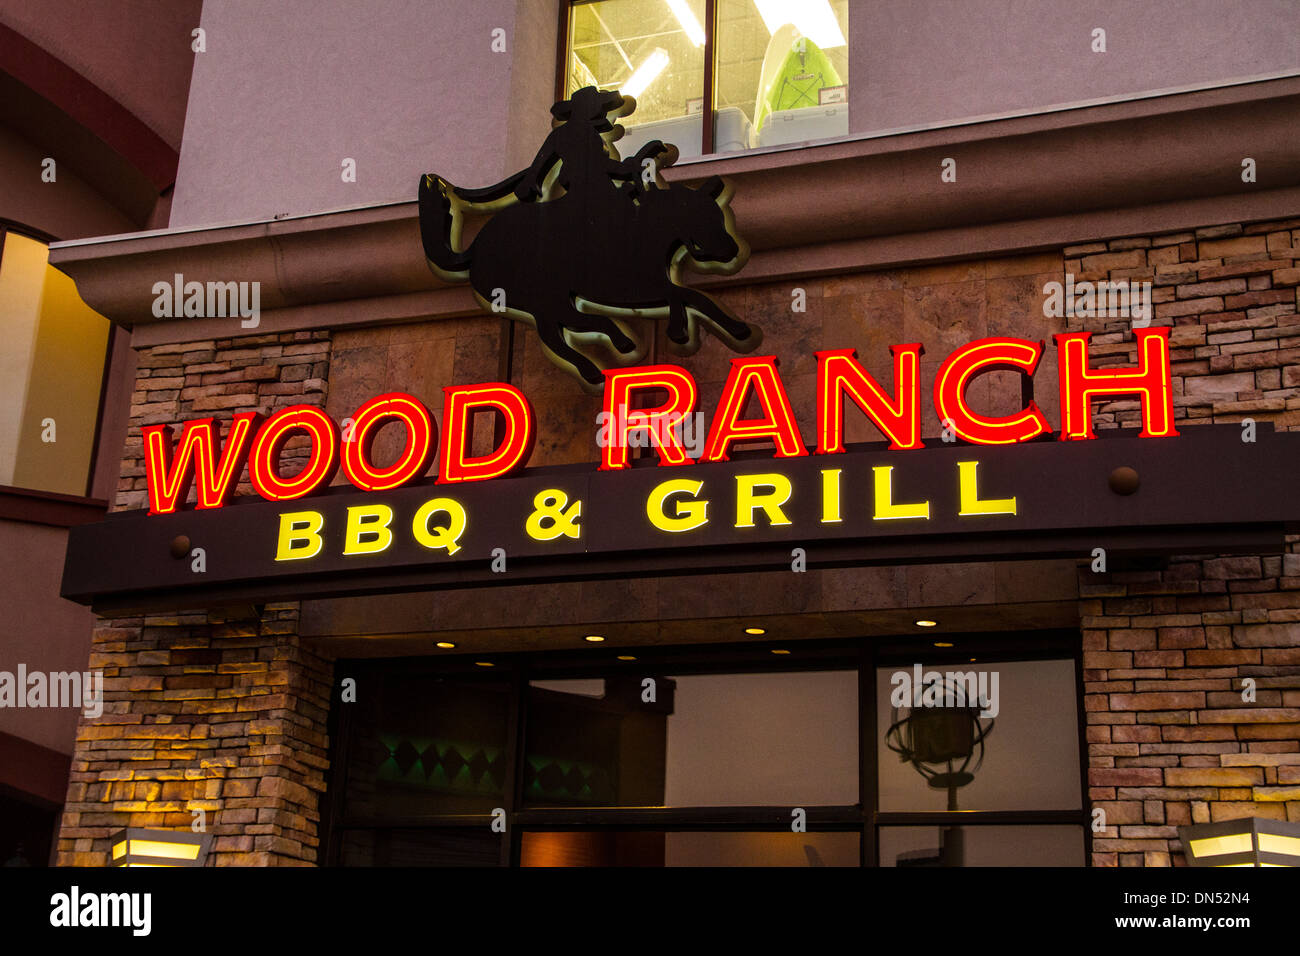 A Wood Ranch BBQ and Grill Restaurant in Northridge California - A Wood Ranch BBQ And Grill Restaurant In Northridge California